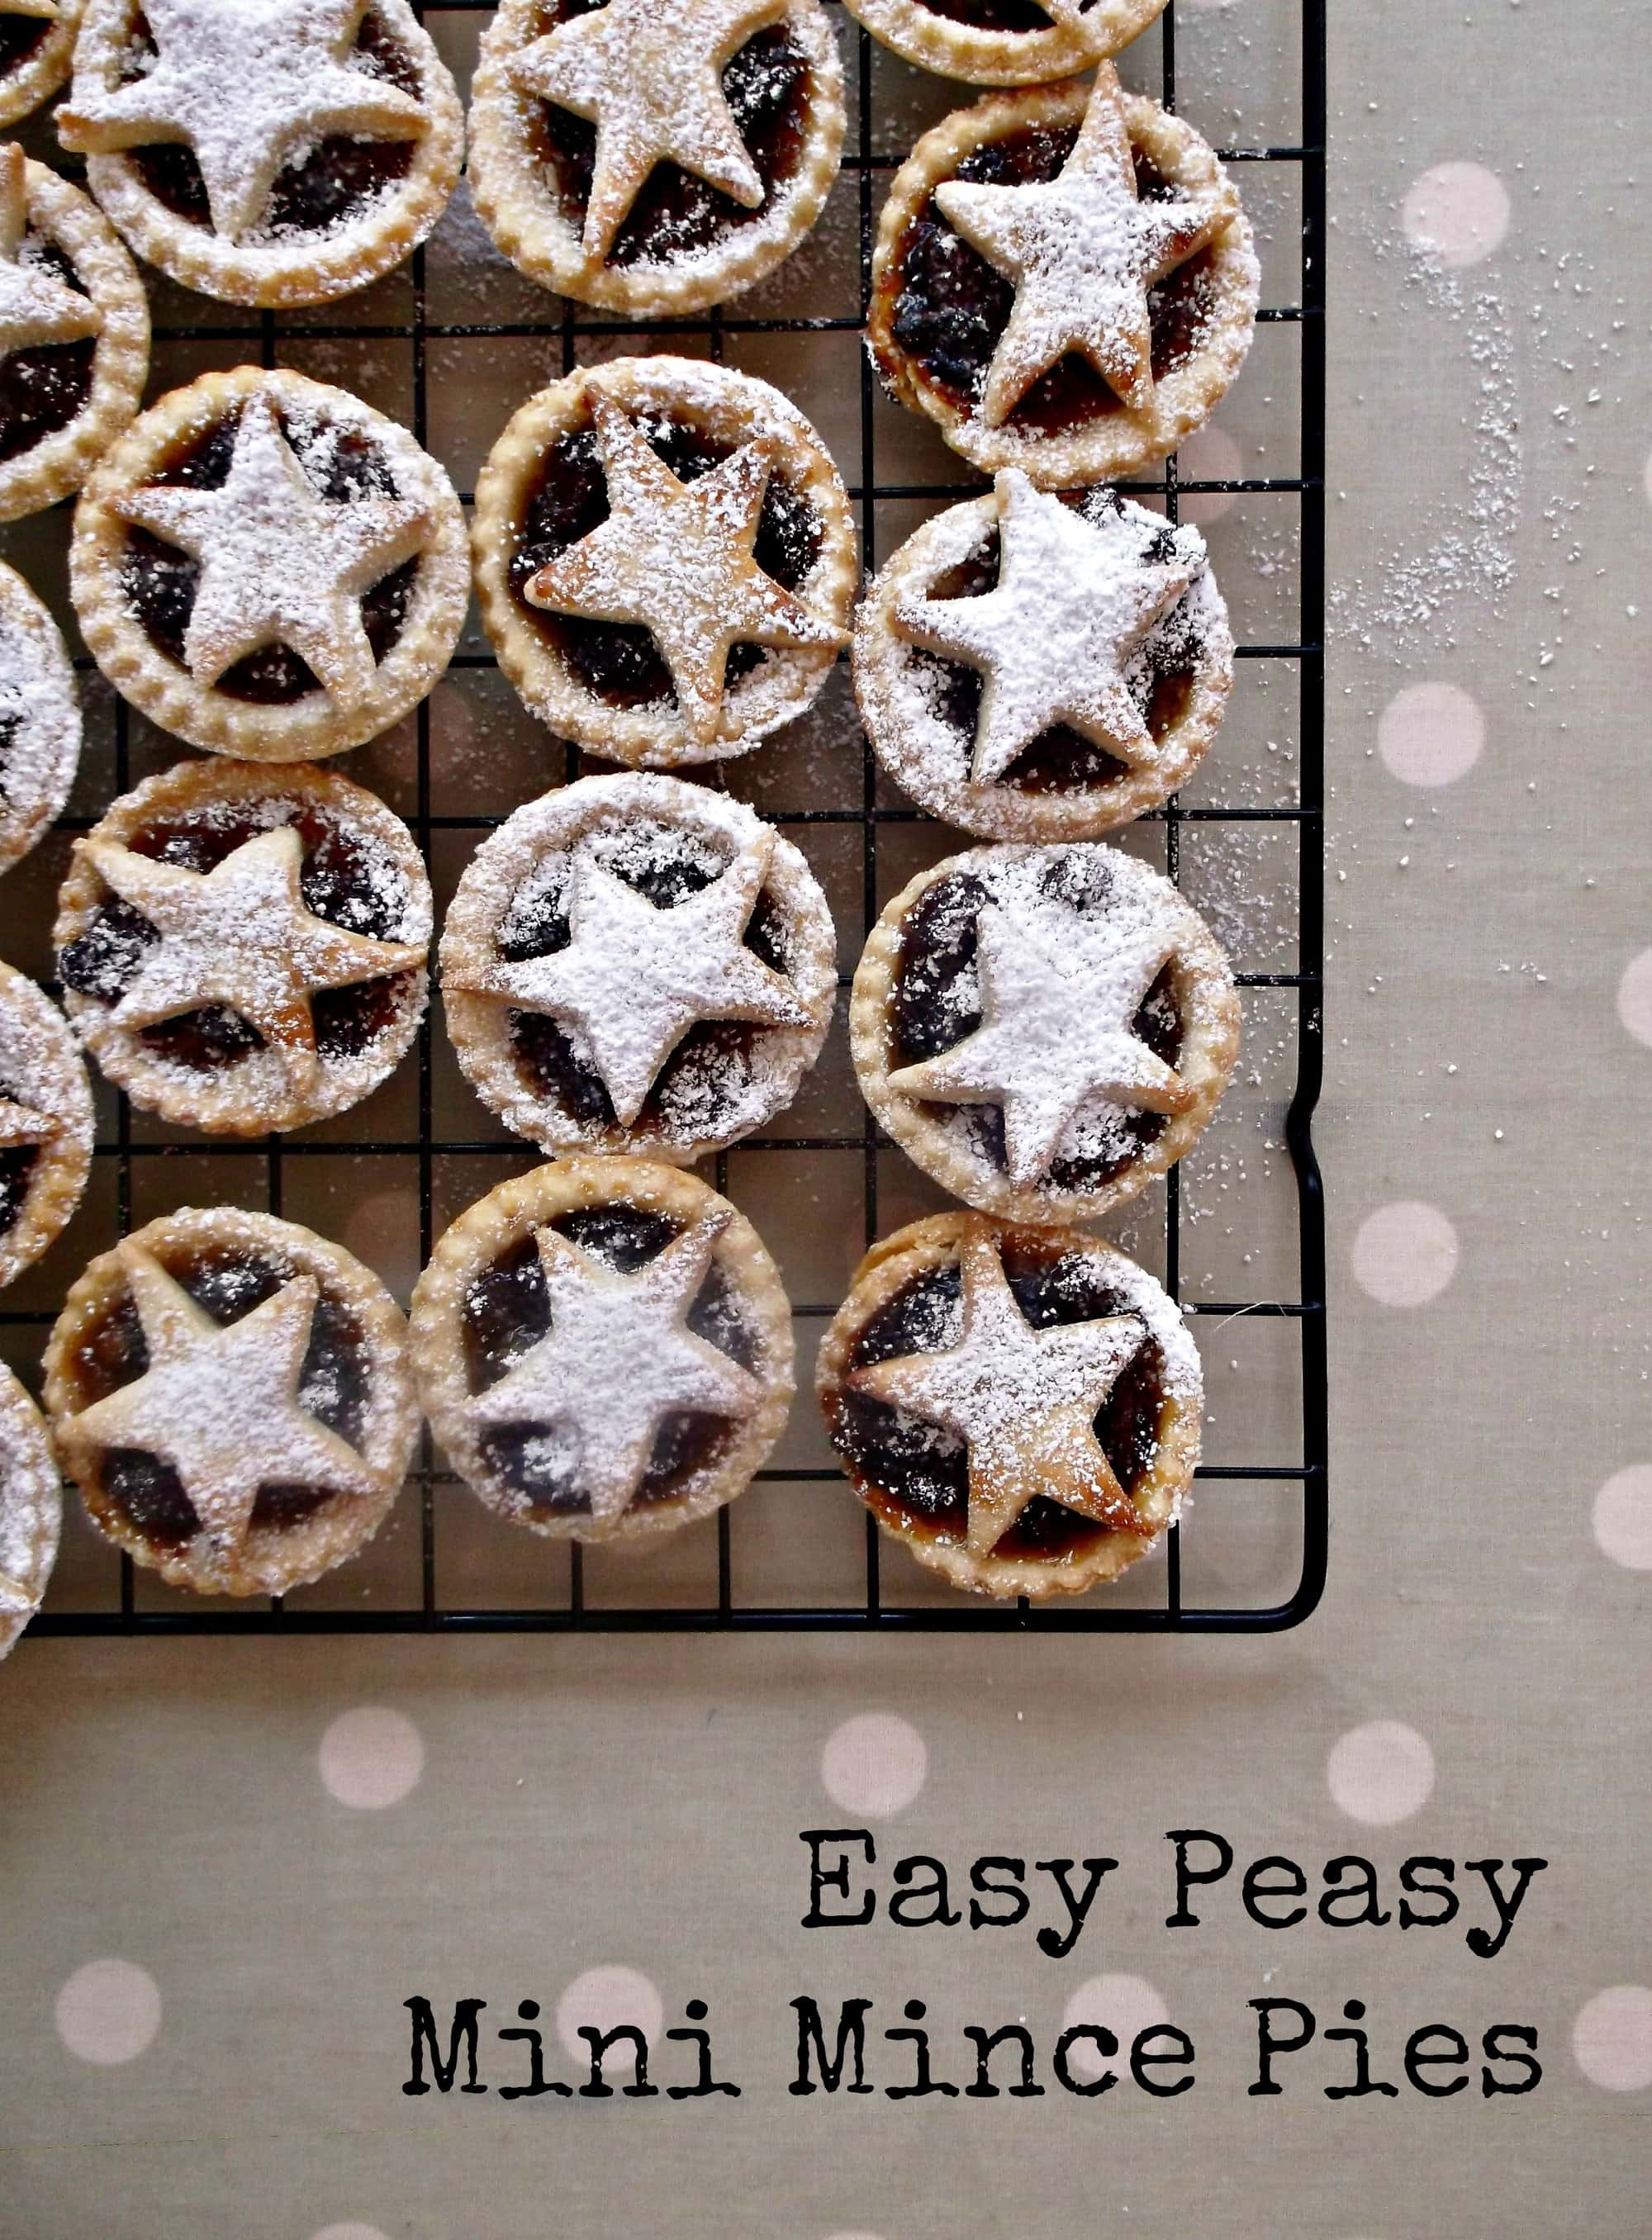 Easy Peasy And Fun: Easy Peasy Mini Mince Pies